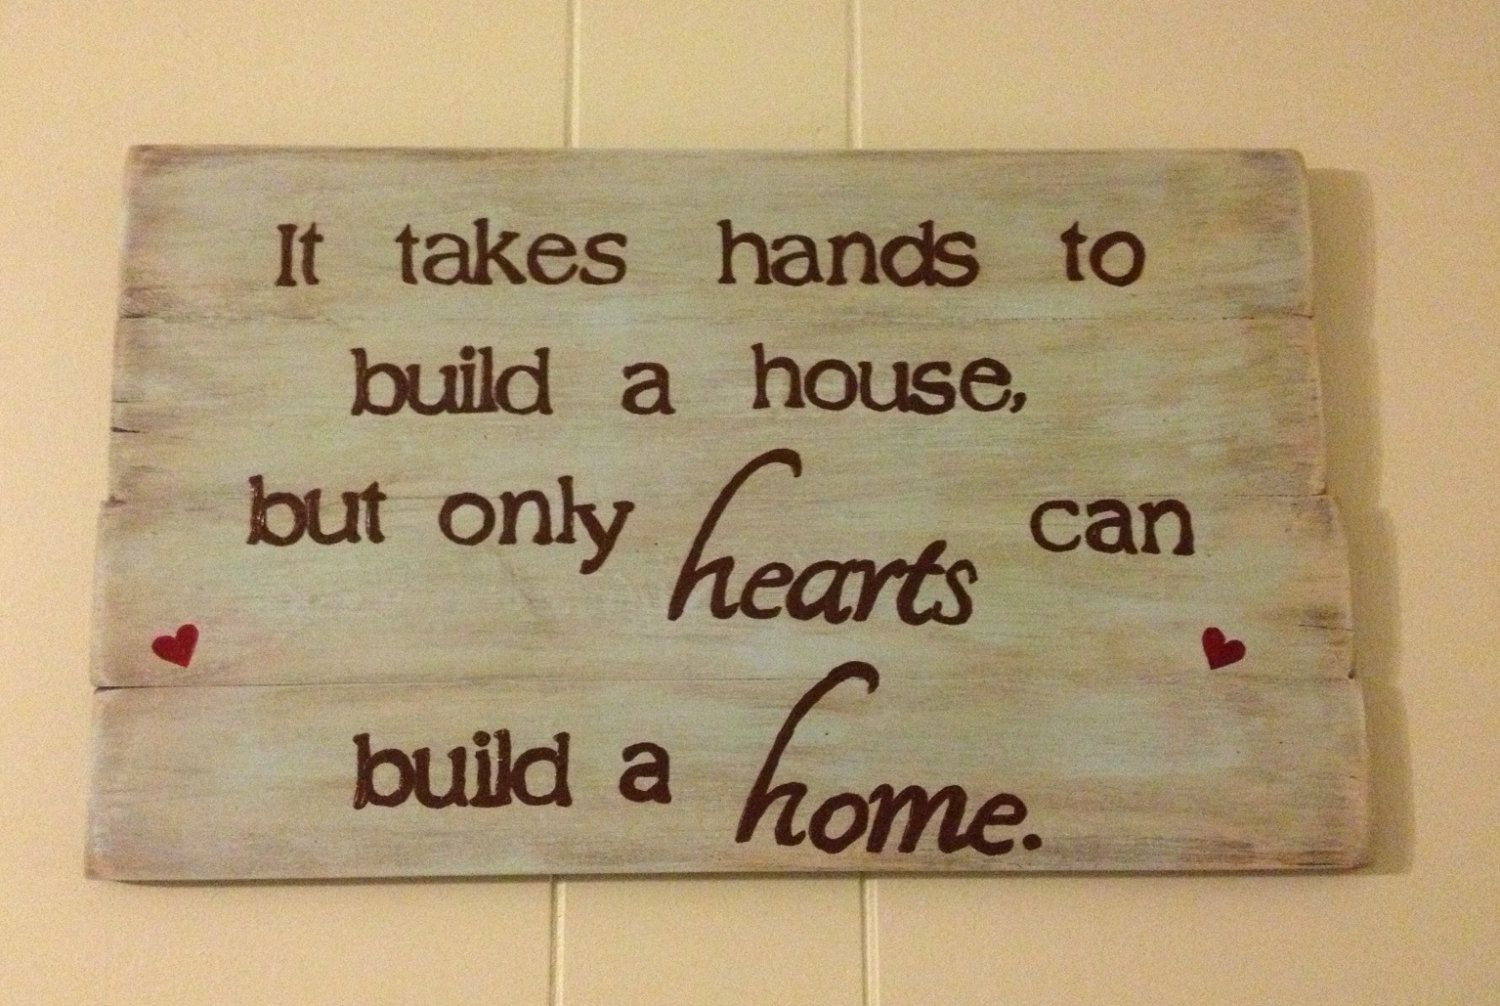 Exceptional Barn Wood Wall Hanging: It Takes Hands To Build A House But Only Hearts Can